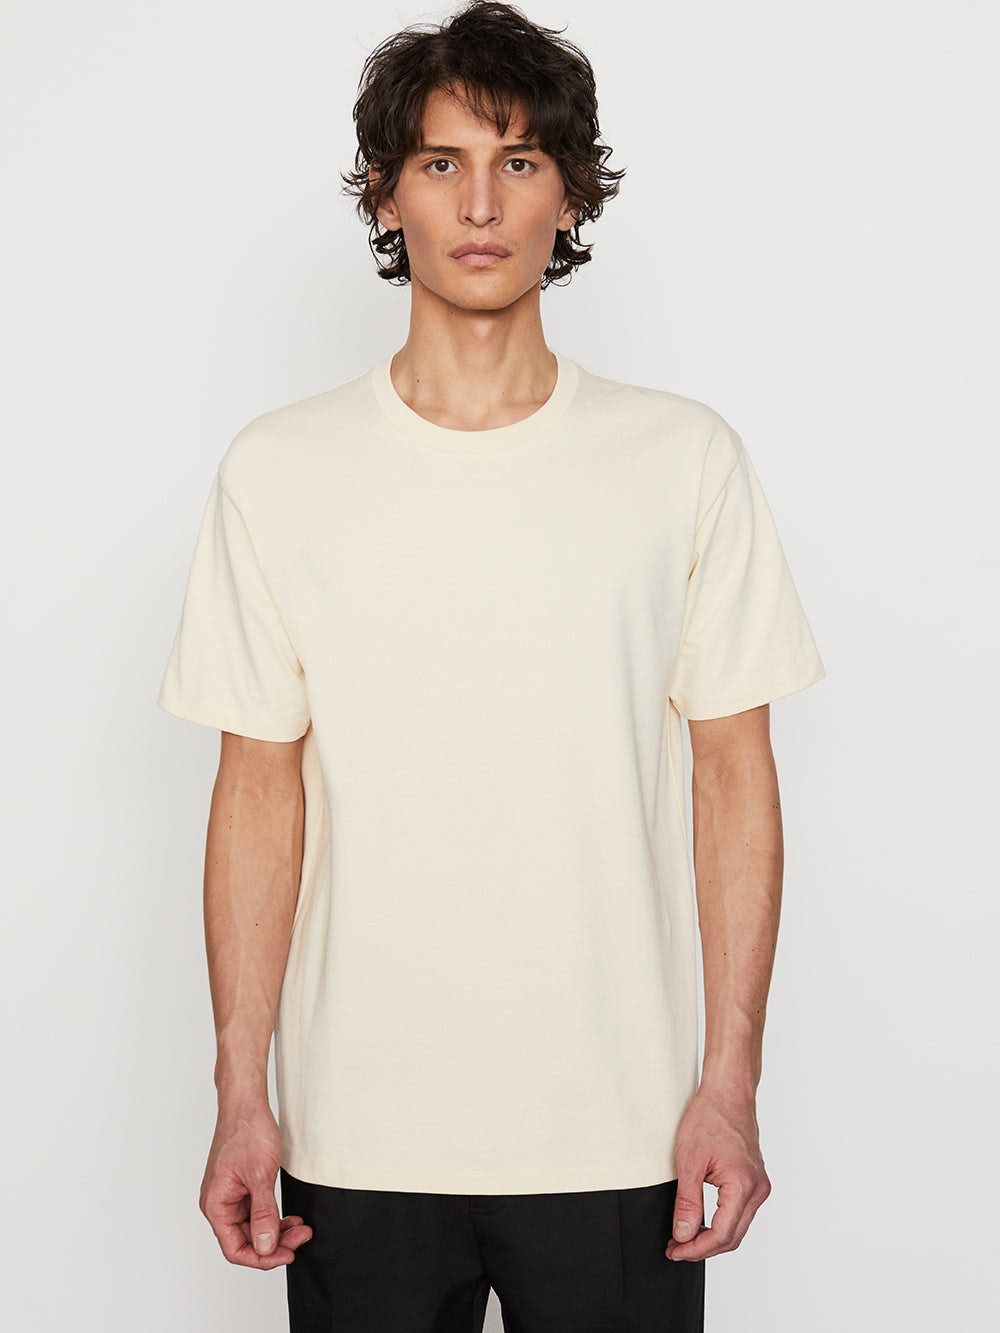 shirt front view